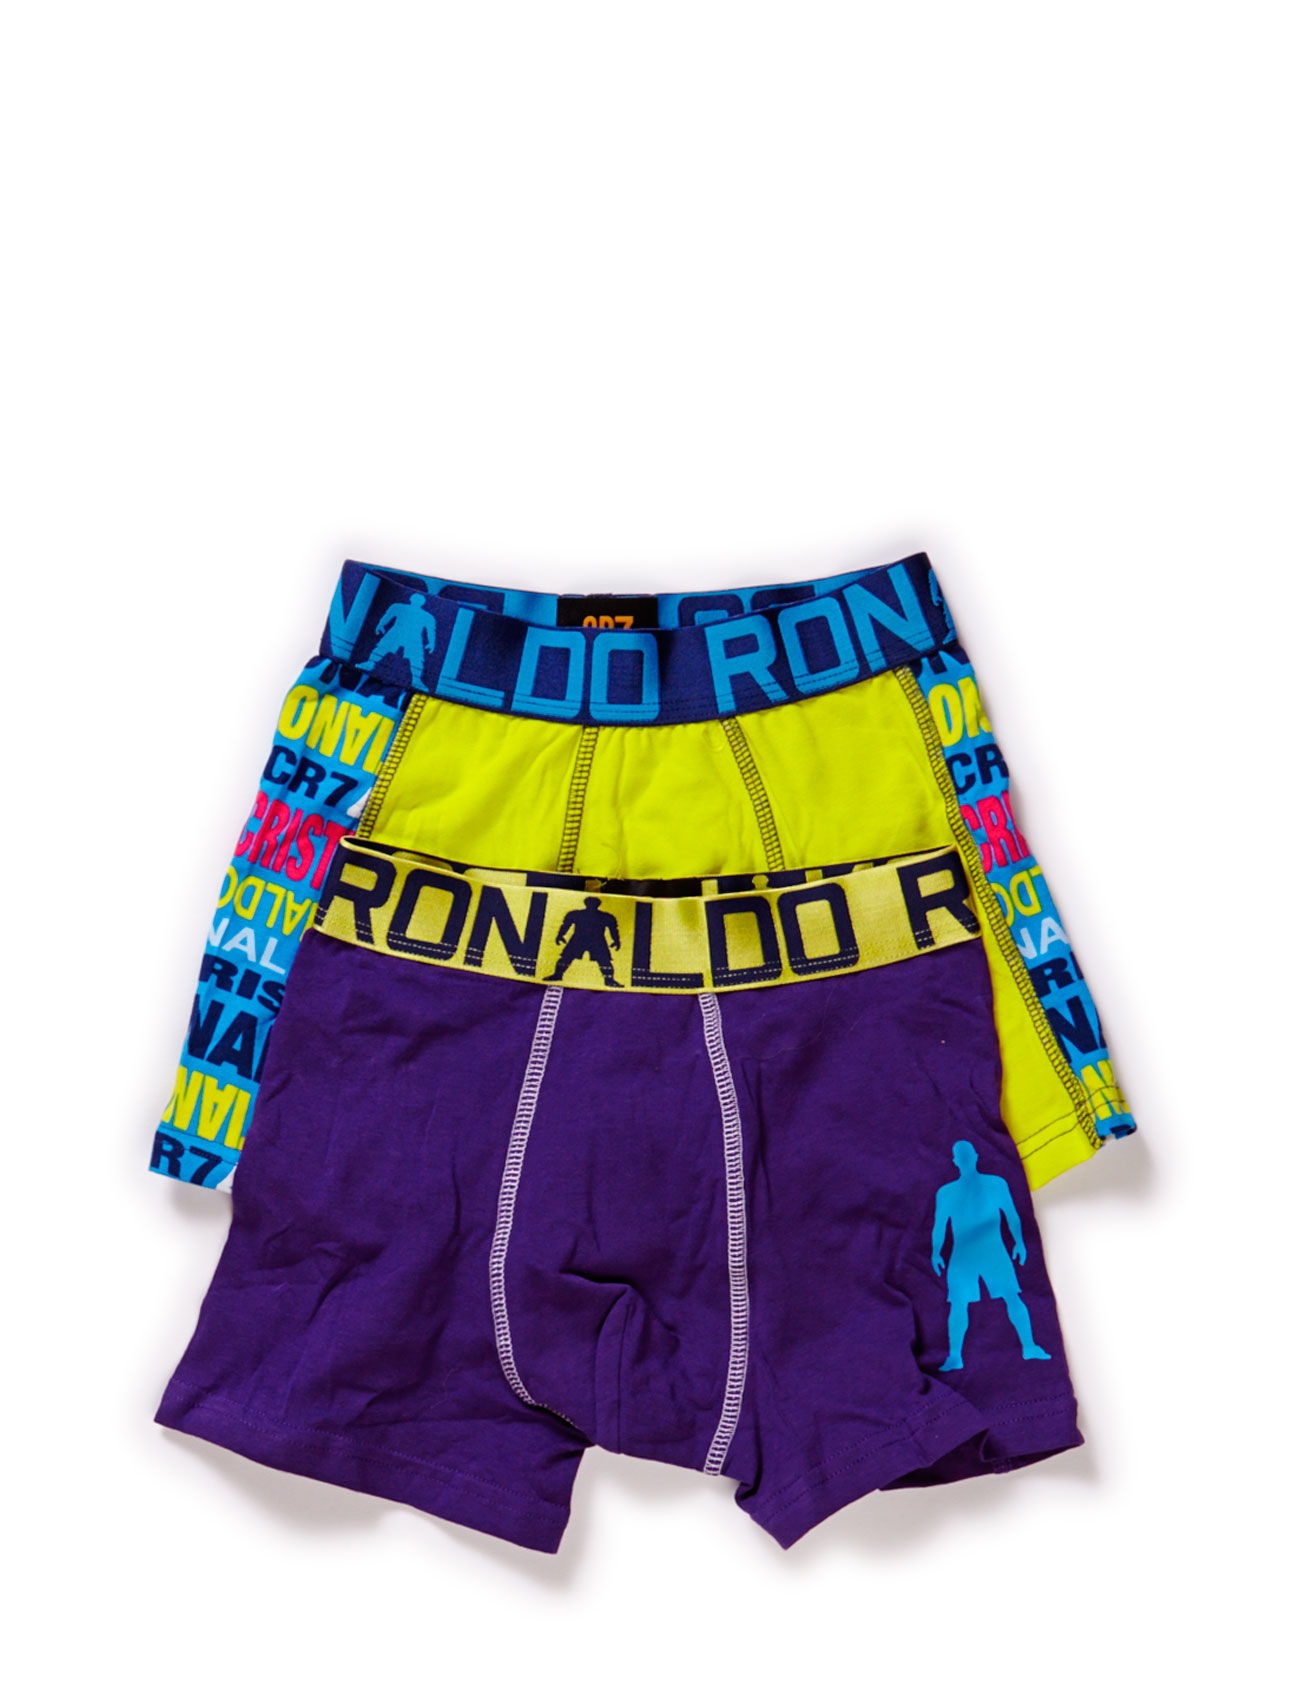 Cr7 Boys Trunk 2-Pack